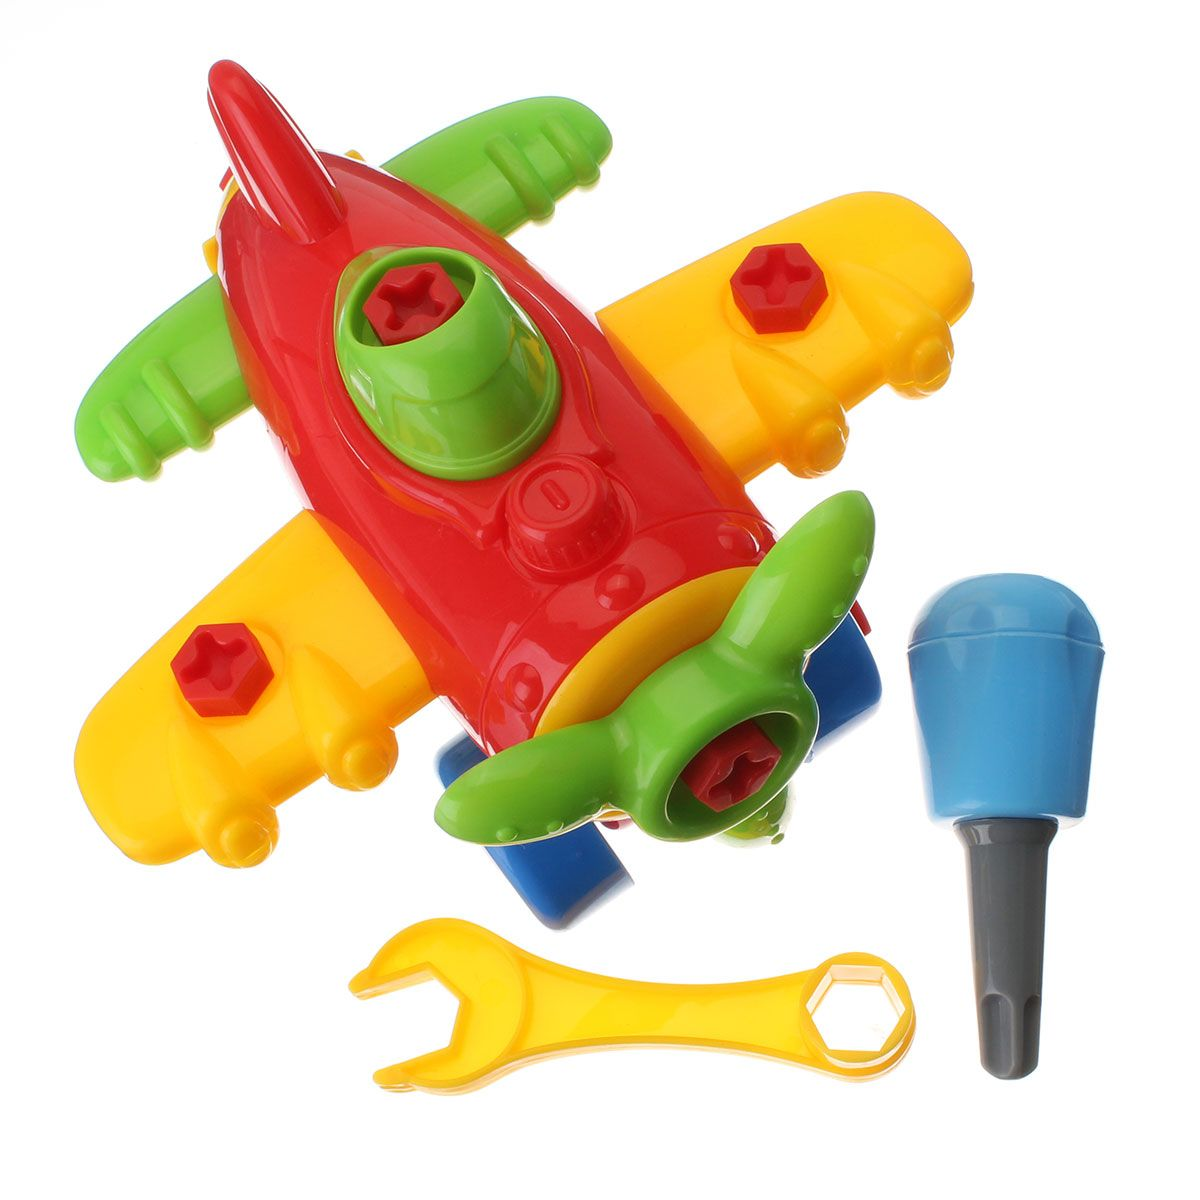 Educational car toys  New DIY Kids Children Toys Child Disassembly And Assembly Cartoon